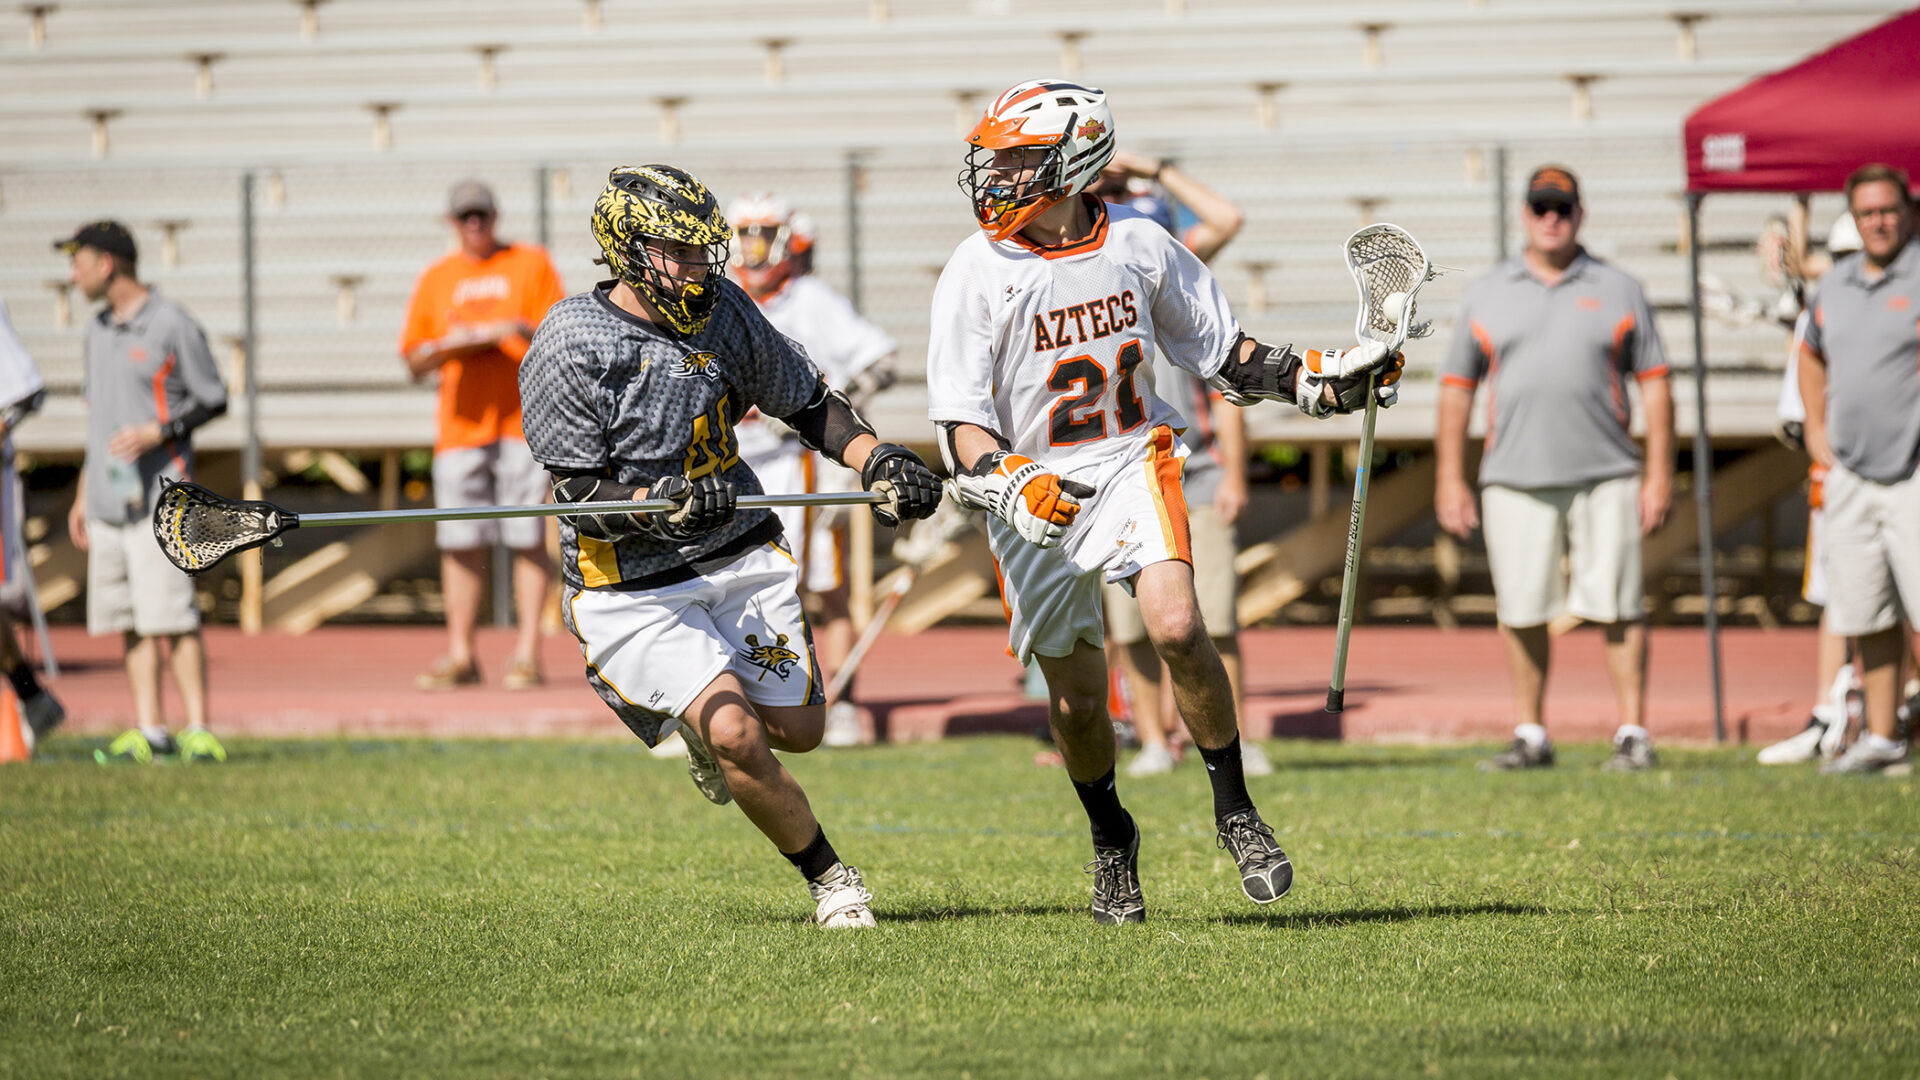 Aztec lacrosse reaches state playoffs for 4th straight year